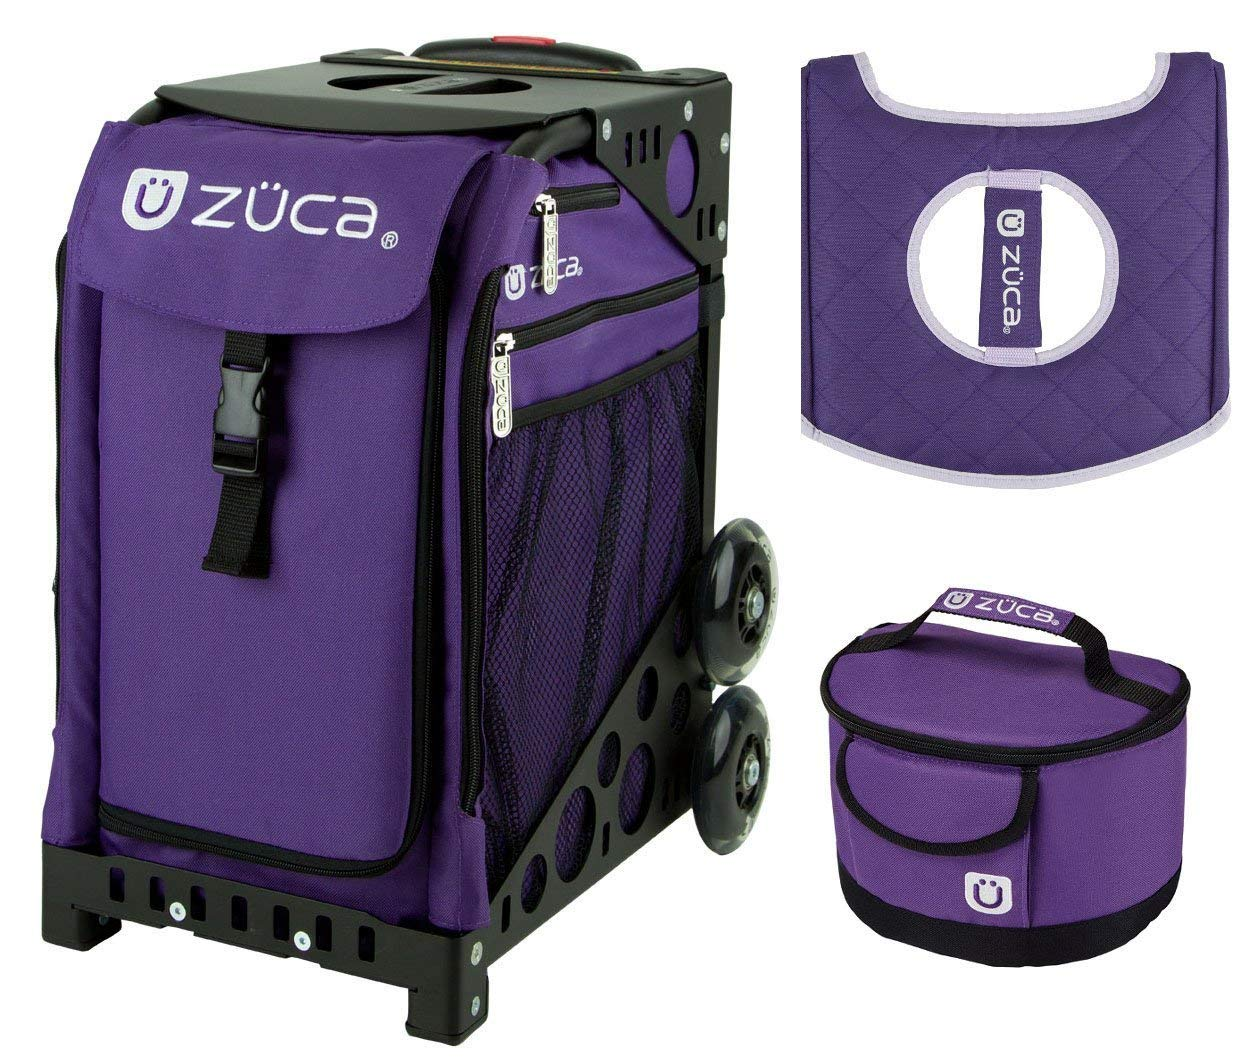 21b5f38a1f70 ZUCA Sport Bag - Rebel with Gift Lunchbox and Seat Cover (Black Frame)